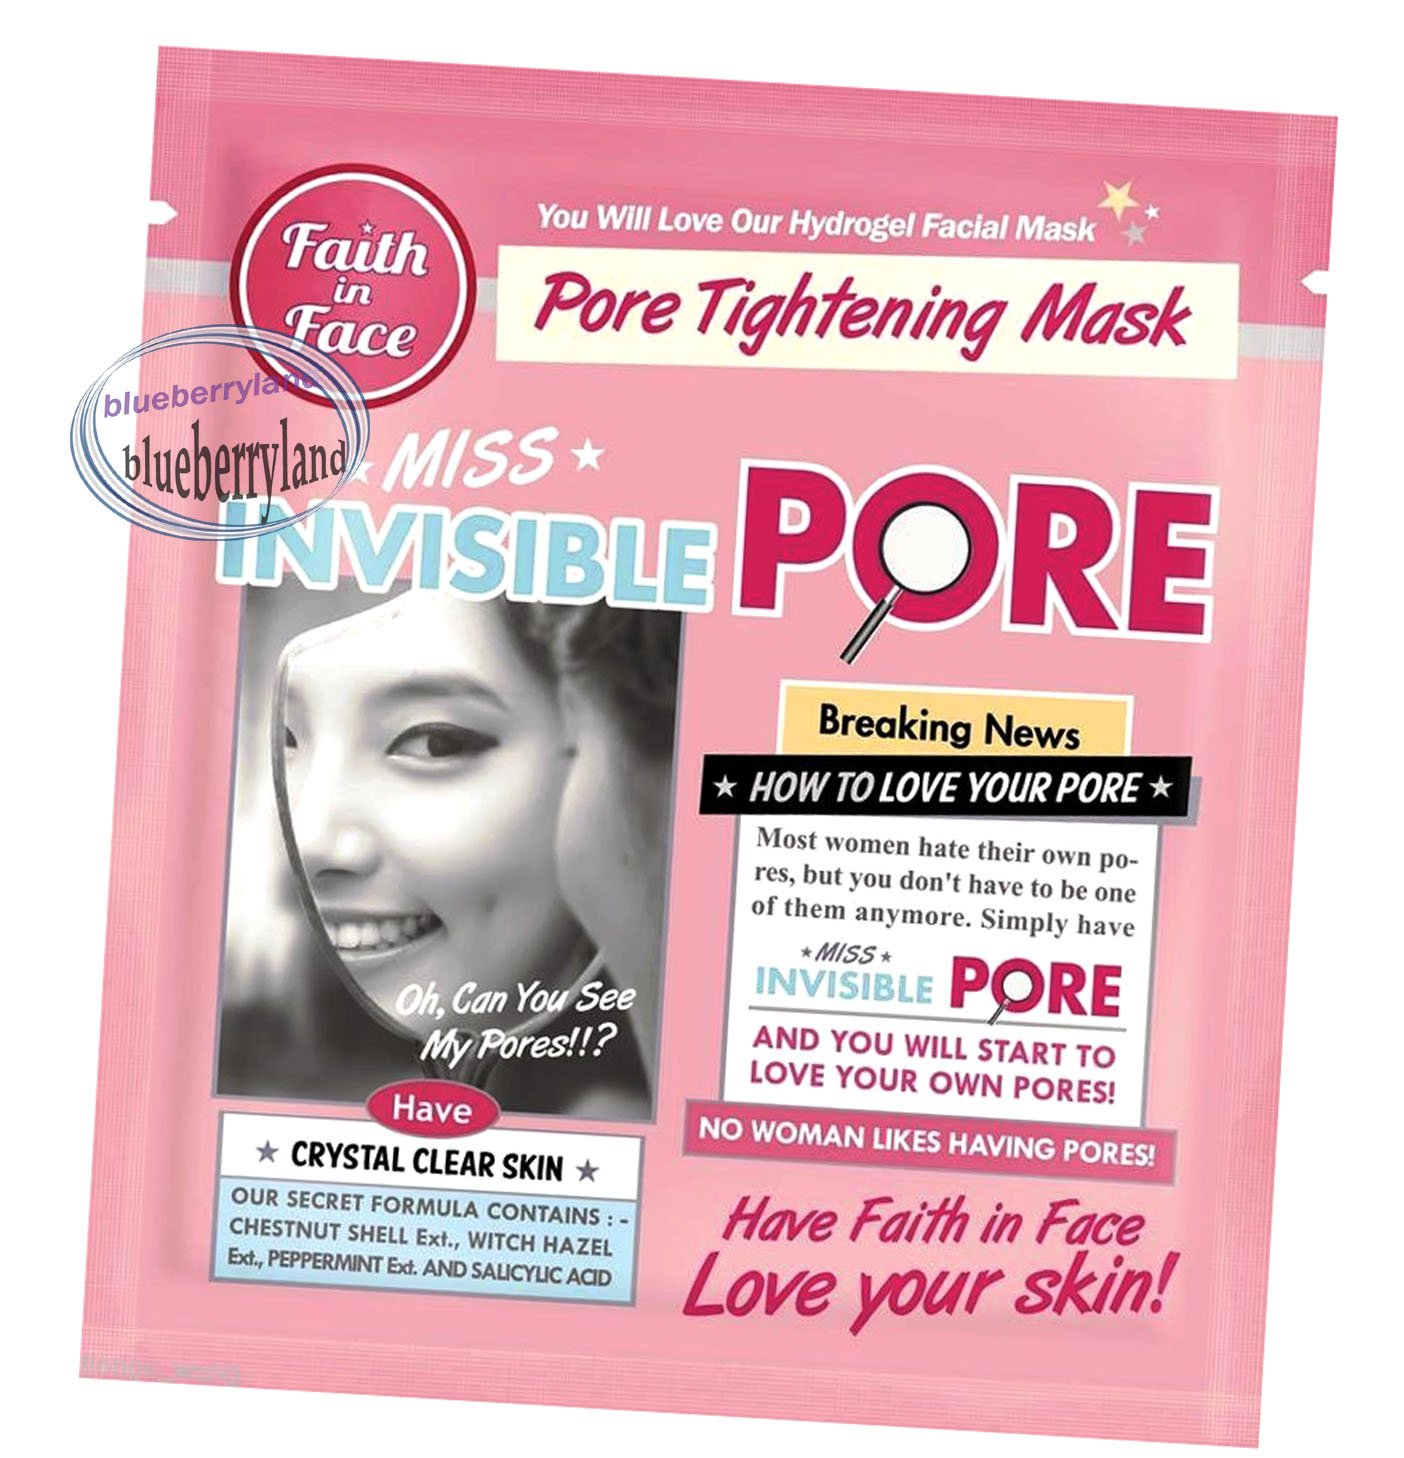 Faith in Face Miss Invisible Pore Hydrogel Mask 3 sheets